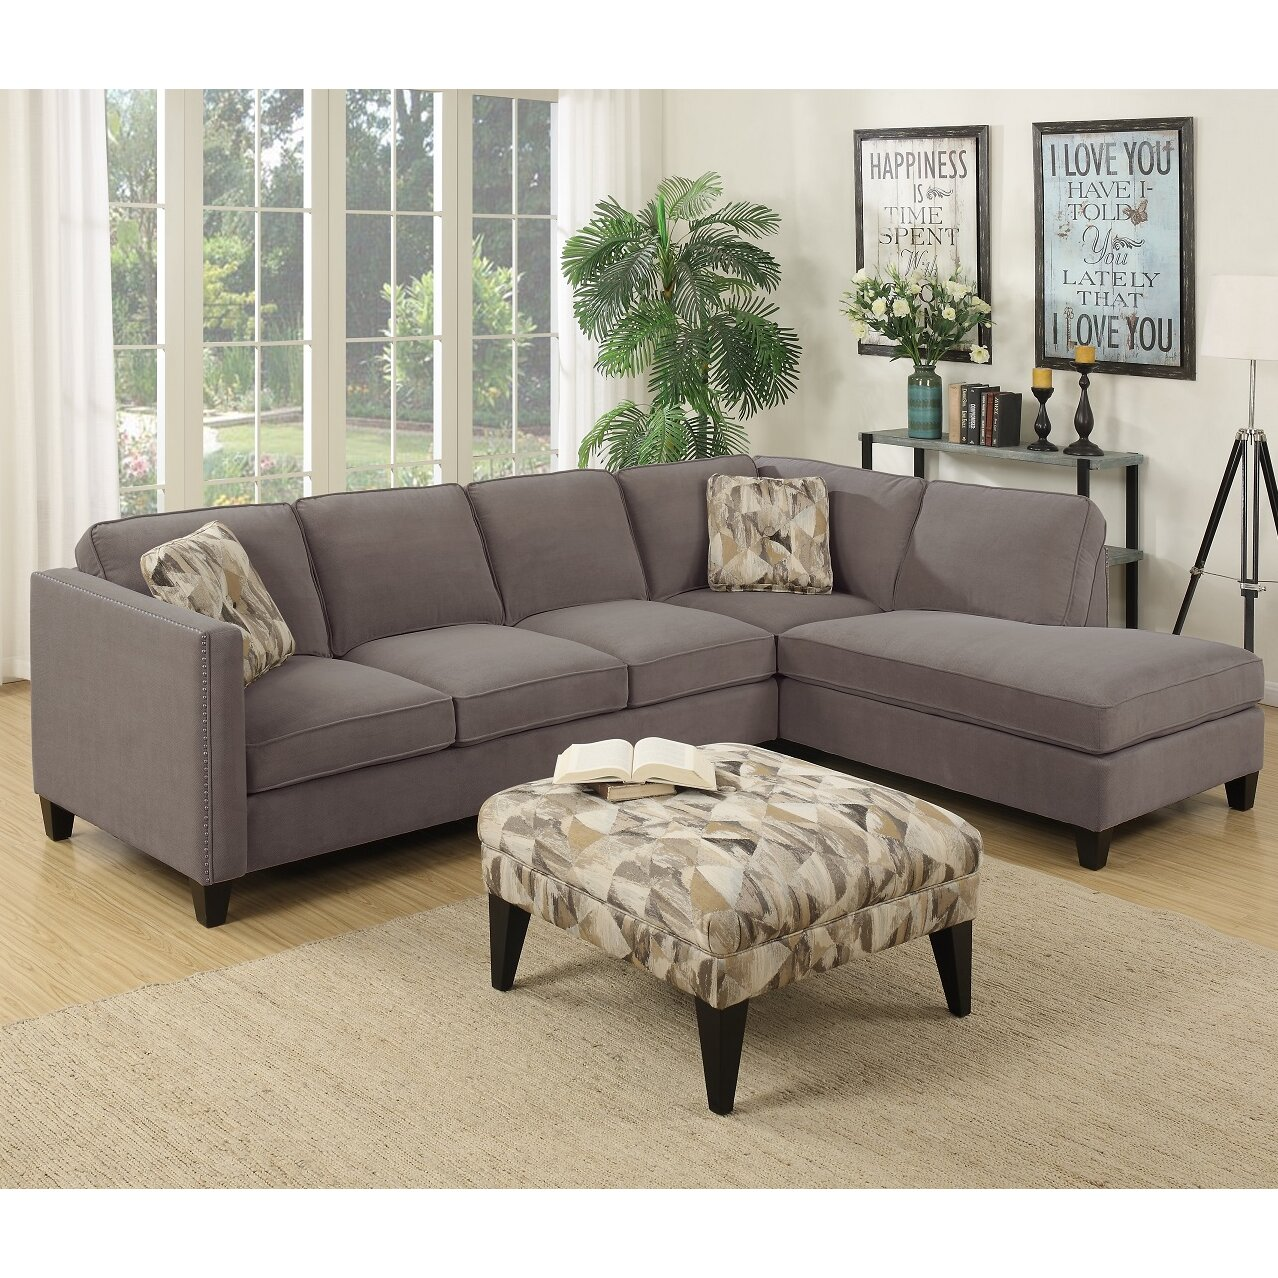 Kara Matching Ottoman Source · Kara Chaise Sectional Dimensions thesecretconsul com  sc 1 st  thesecretconsul.com : kara chaise sectional - Sectionals, Sofas & Couches